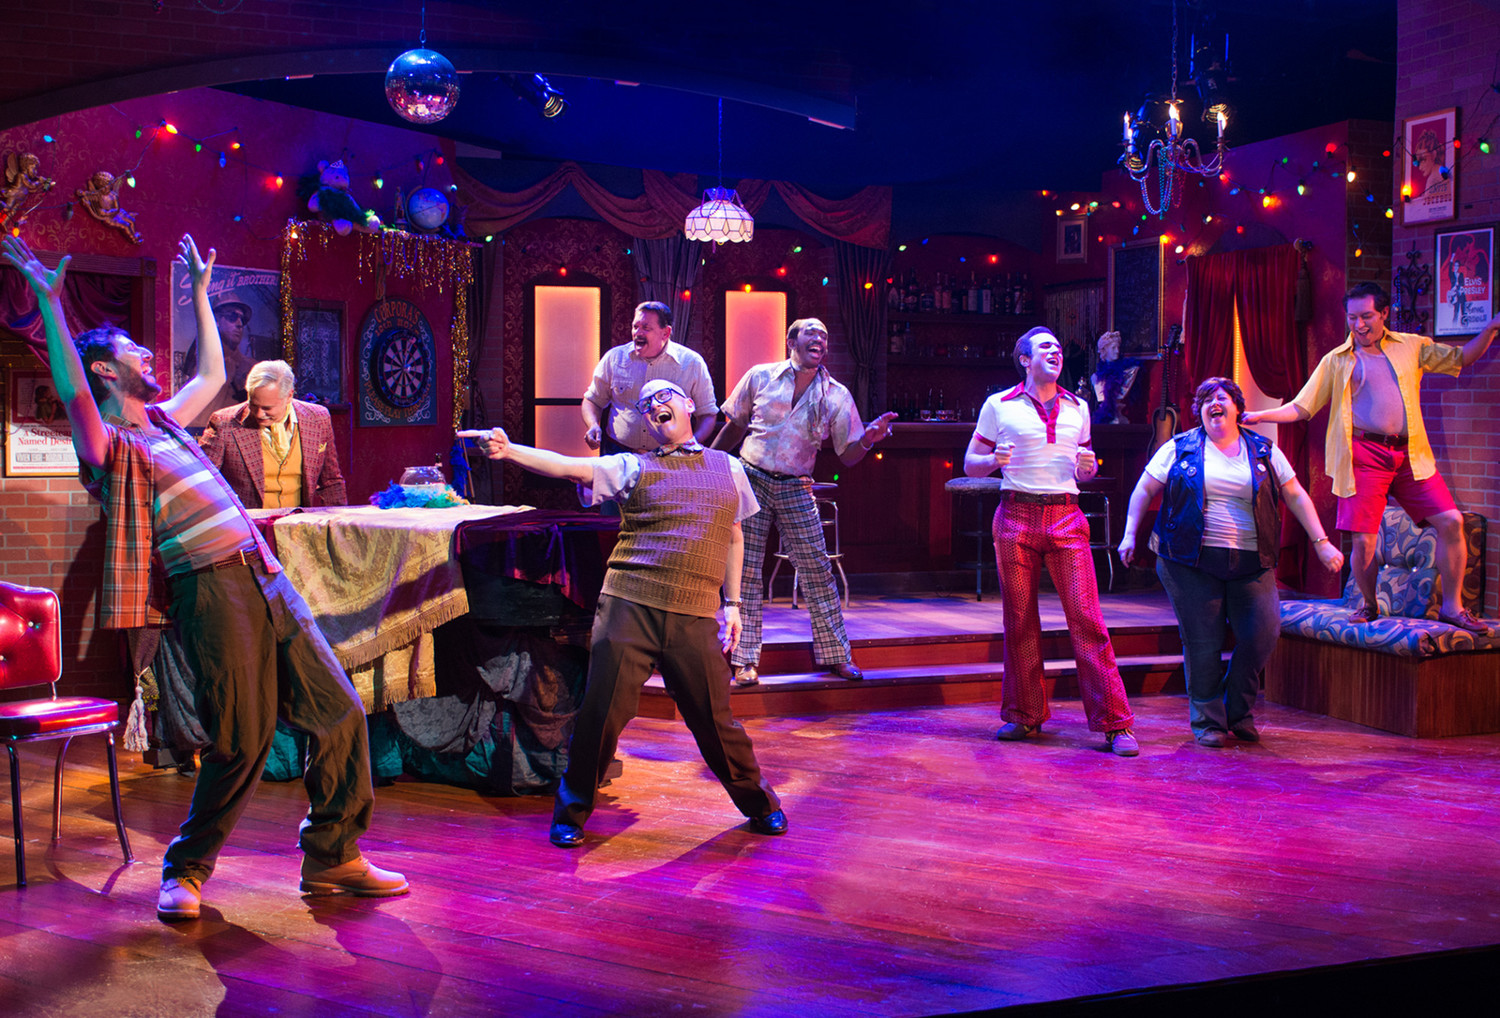 BWW Review: THE VIEW UPSTAIRS at New Conservatory Theatre Center Follows A Time-Travelling Millennial Back To The Historic Upstairs Lounge In 1973